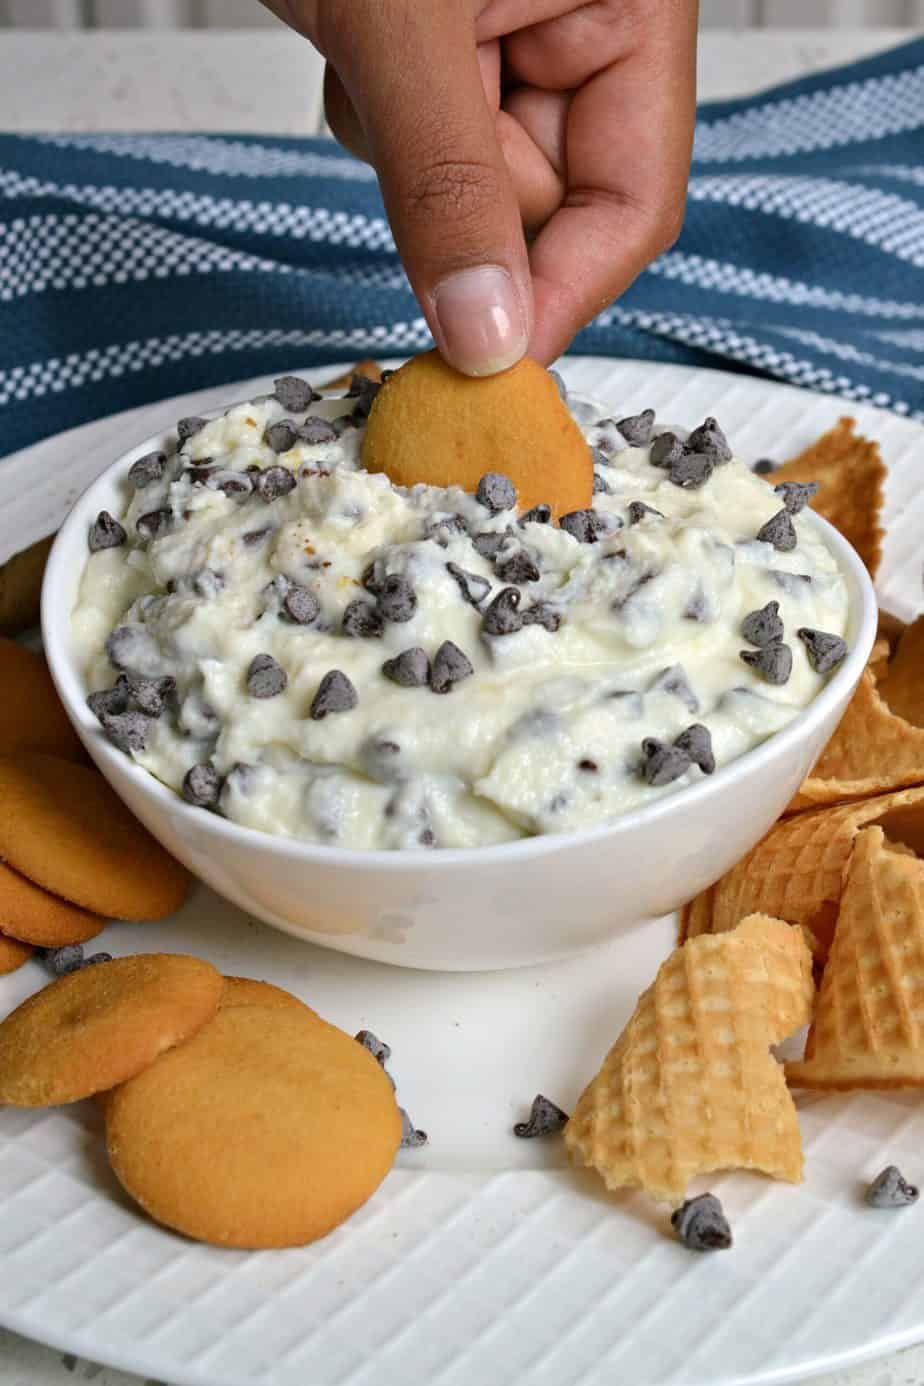 This delicious and fun party worthy Cannoli Dip tastes like the best part of cannoli in a creamy dip form.